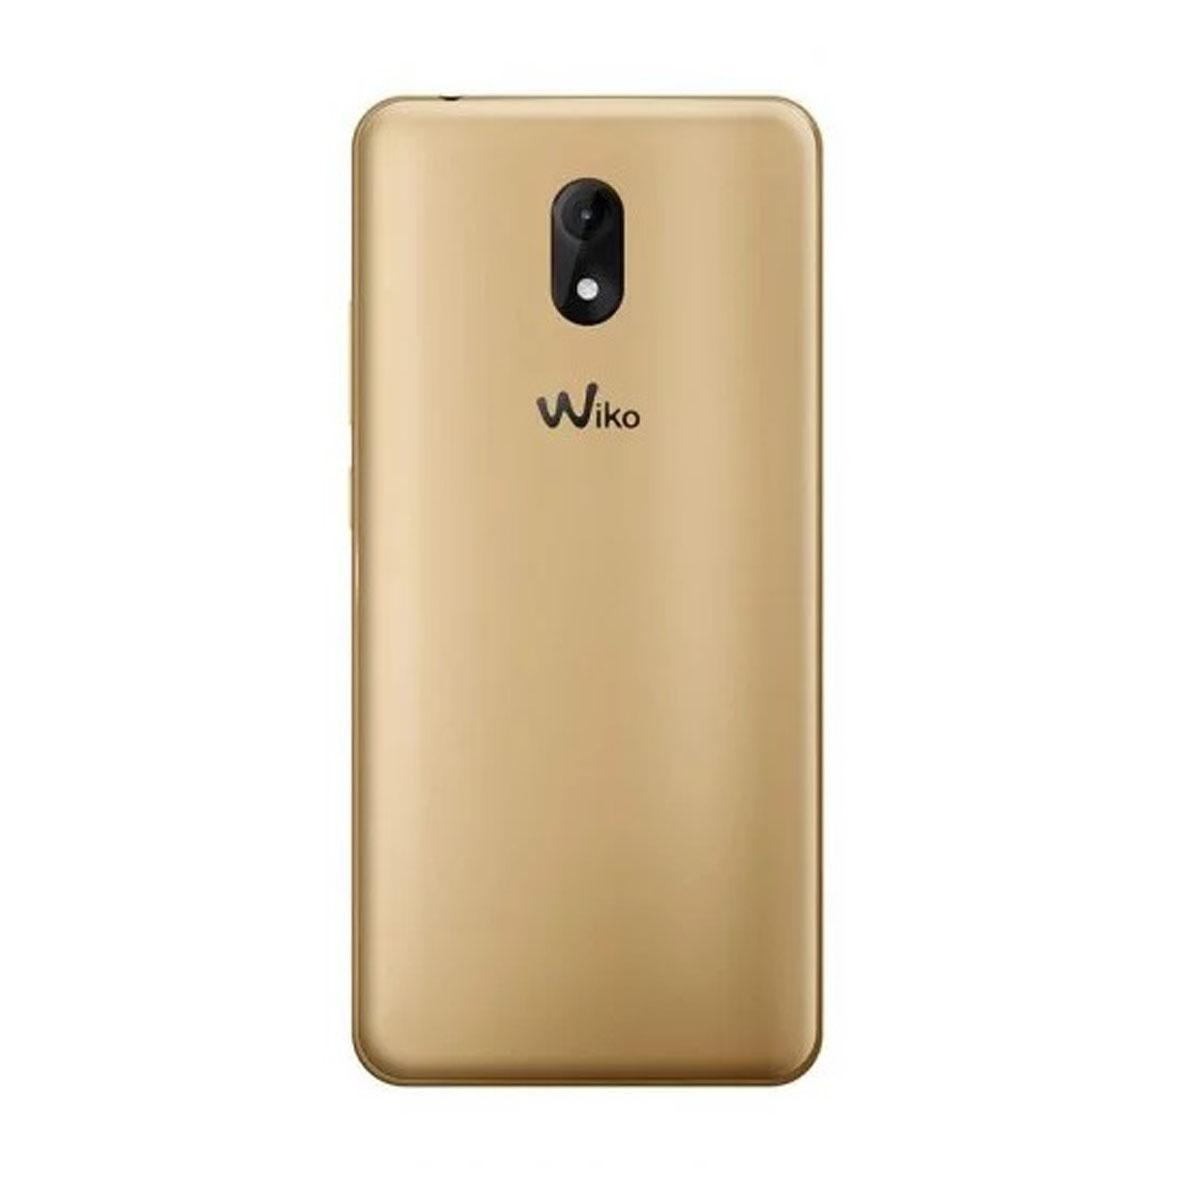 Smartphone Wiko Lenny 5 QC A7 1.3 GHz 5.7 16 GB 1 GB Dual SIM Camera 8MP/5MP Battery 2.800 MAh Android Oreo Color Gold